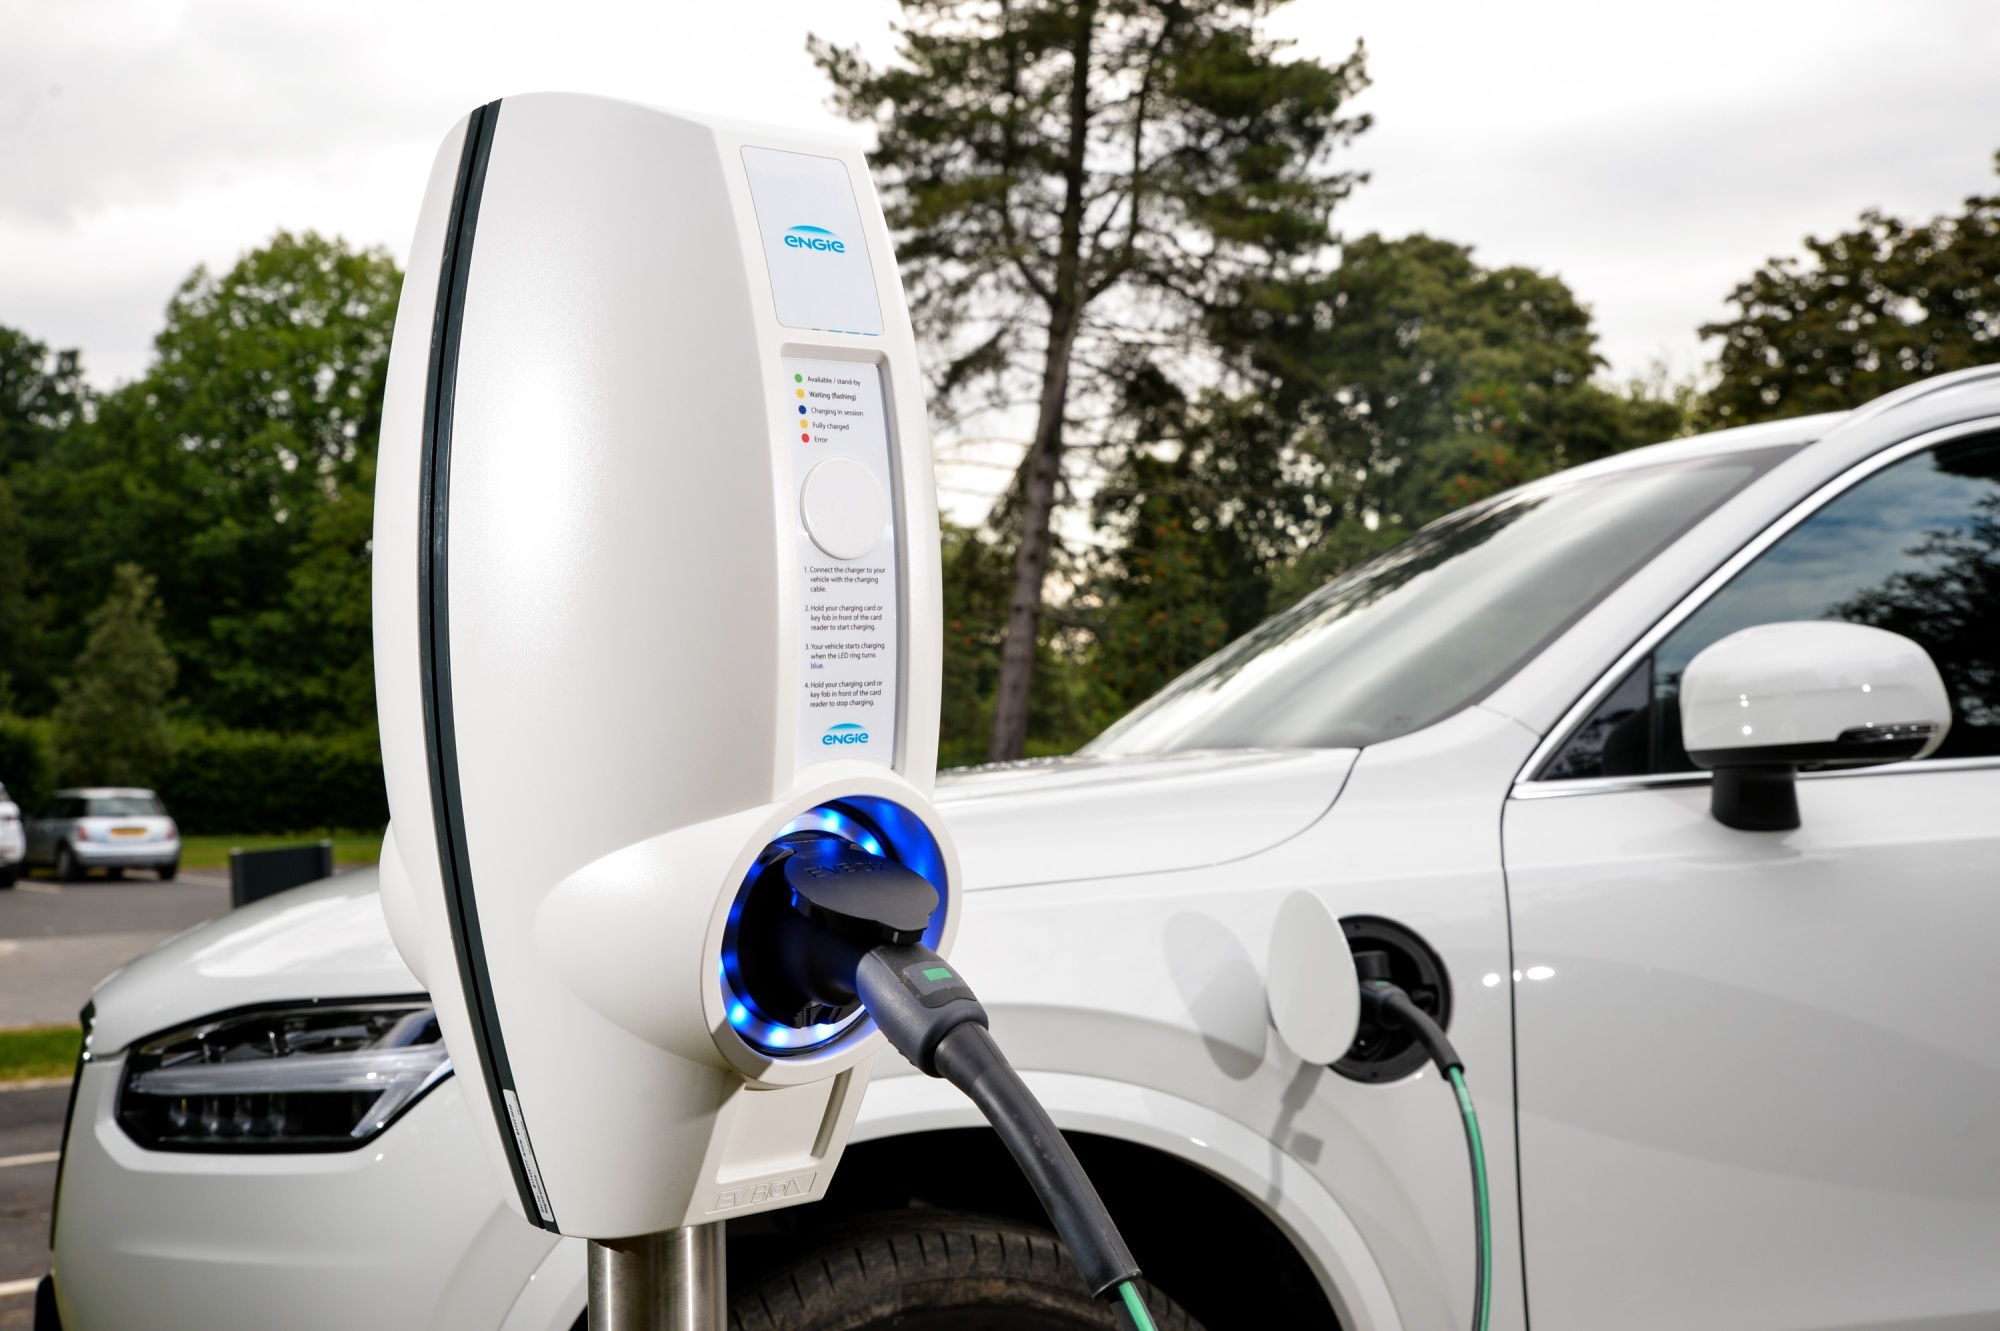 ENGIE will install 88 rapid electric vehicle charging points in West Yorkshire